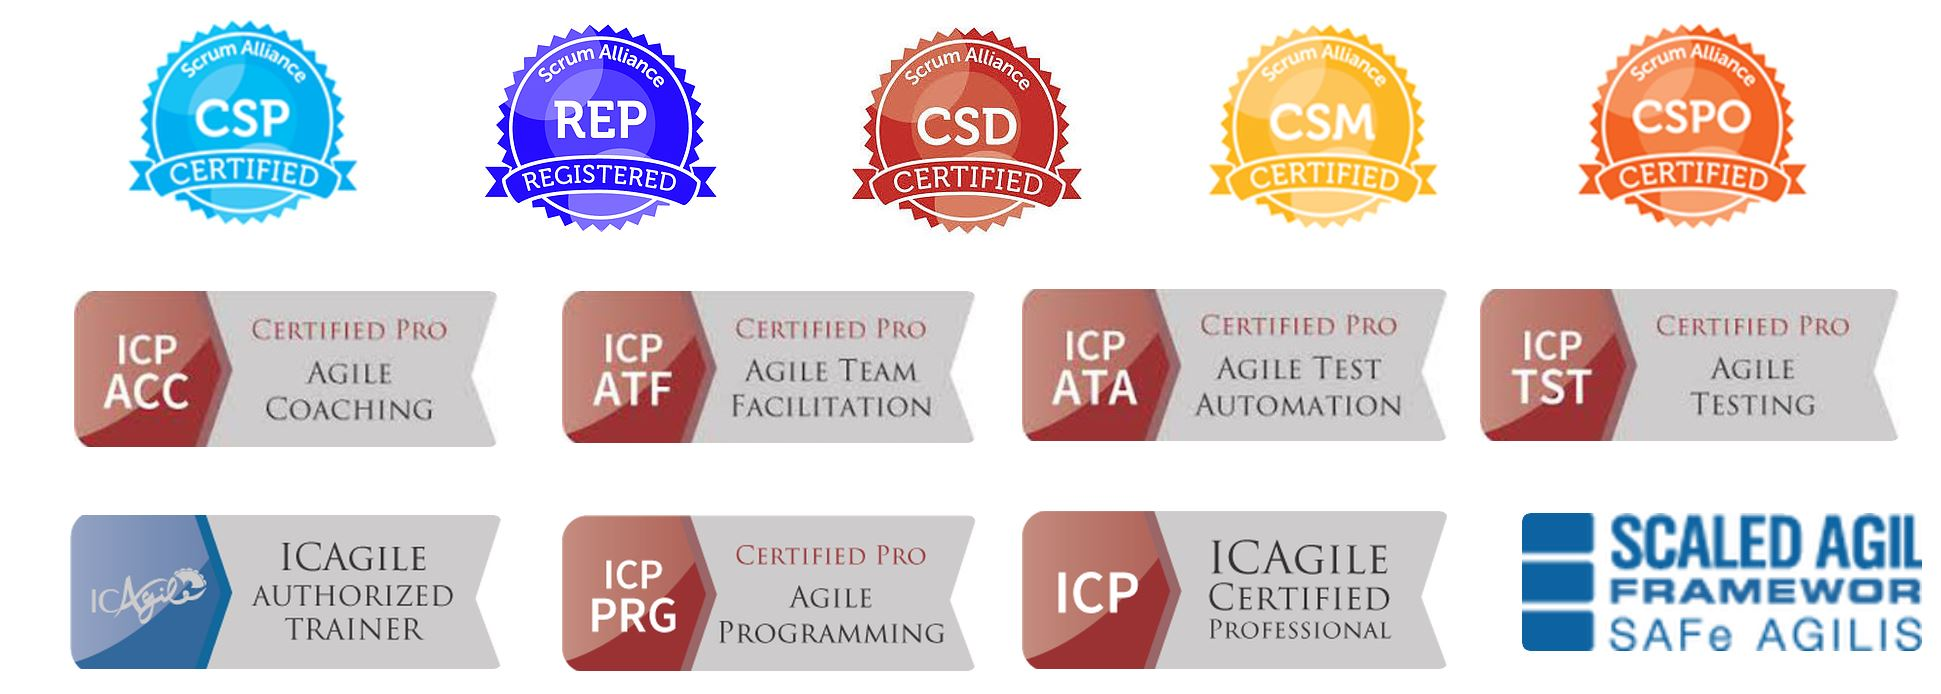 Image of Bill's Certifications